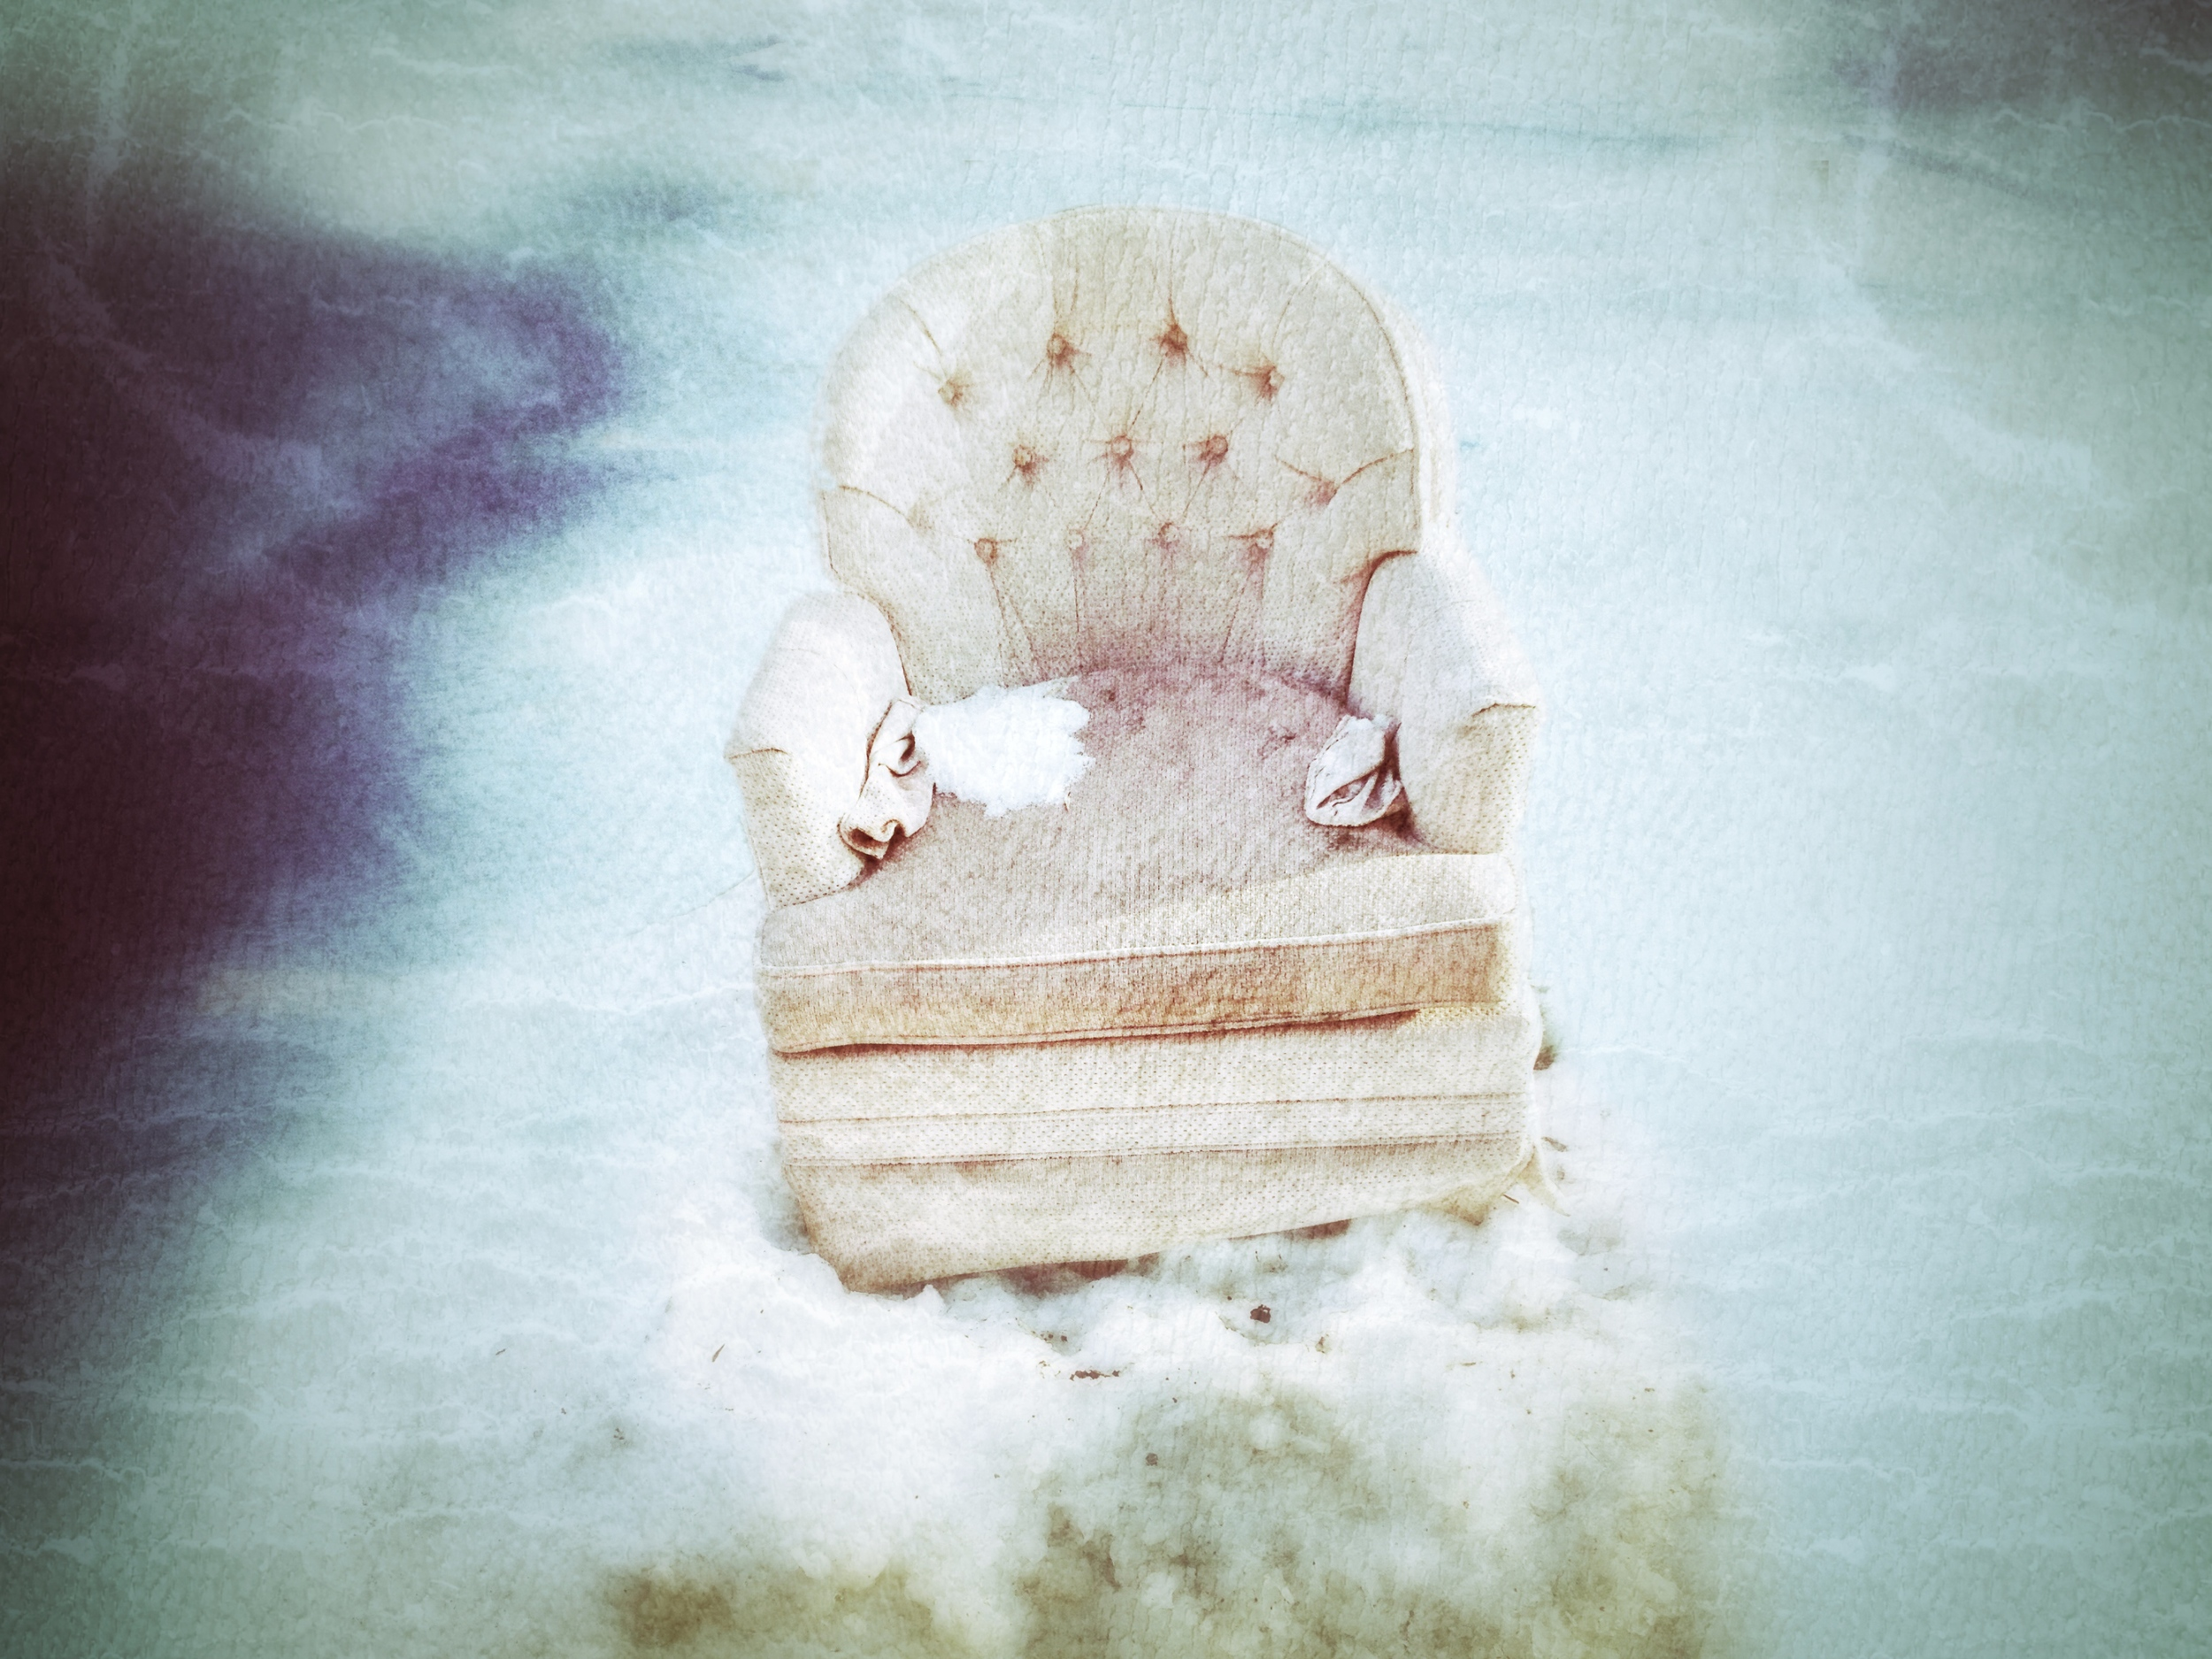 The pinky throne of the winter fairy or memories of the recycling day